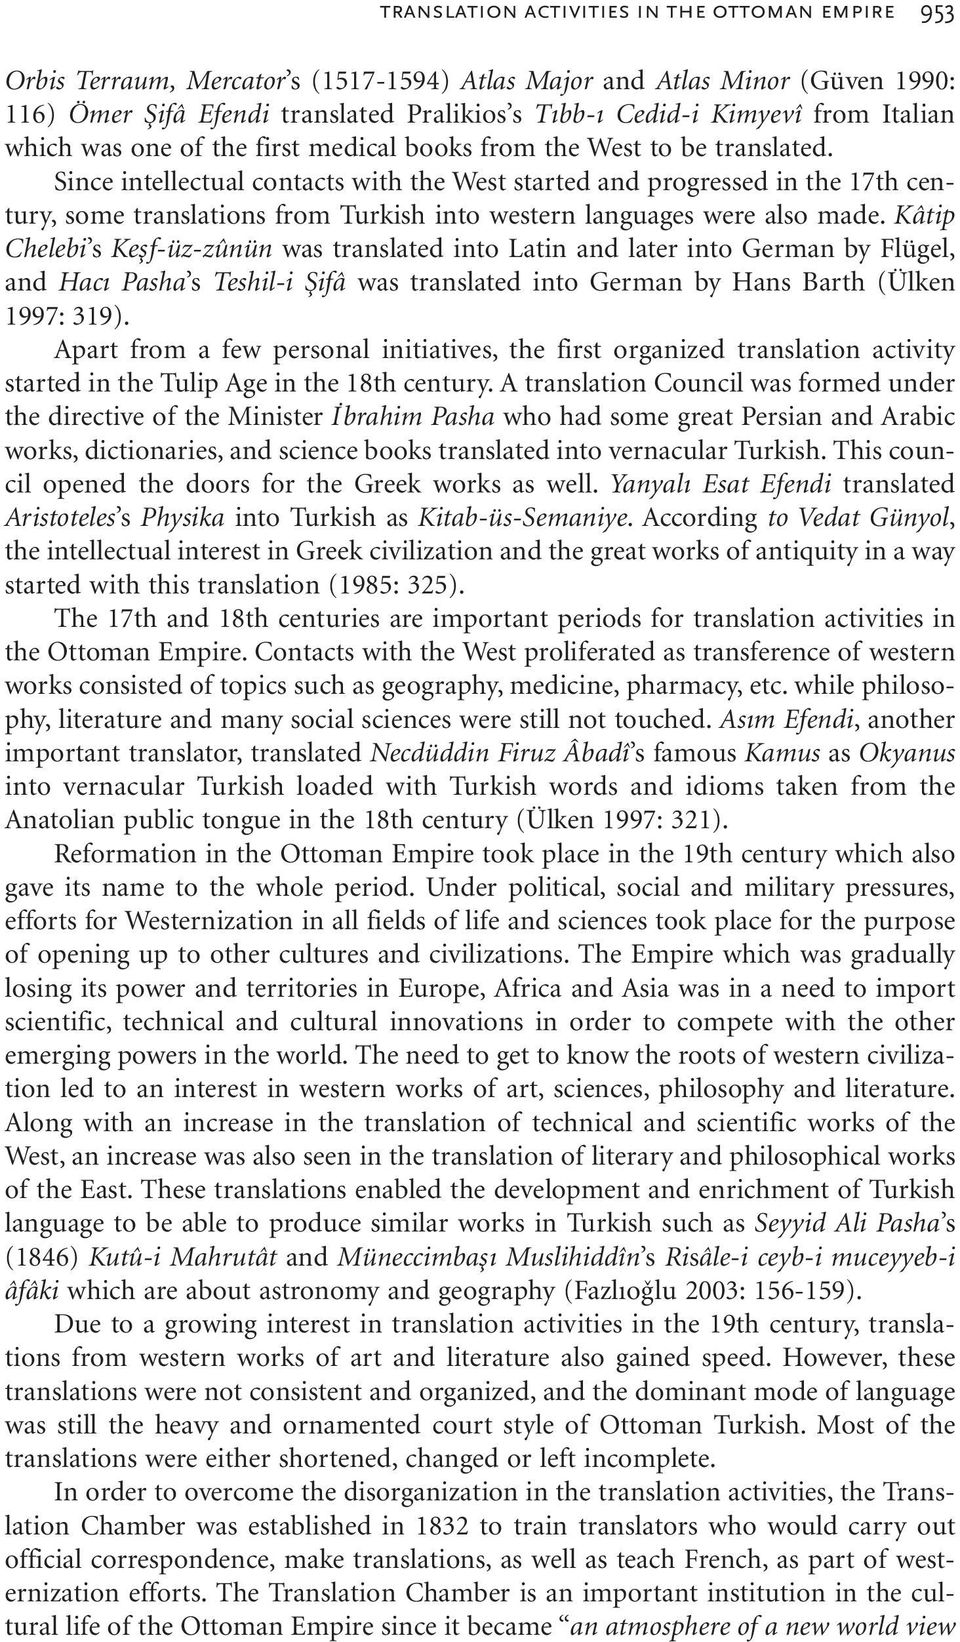 Since intellectual contacts with the West started and progressed in the 17th century, some translations from Turkish into western languages were also made.